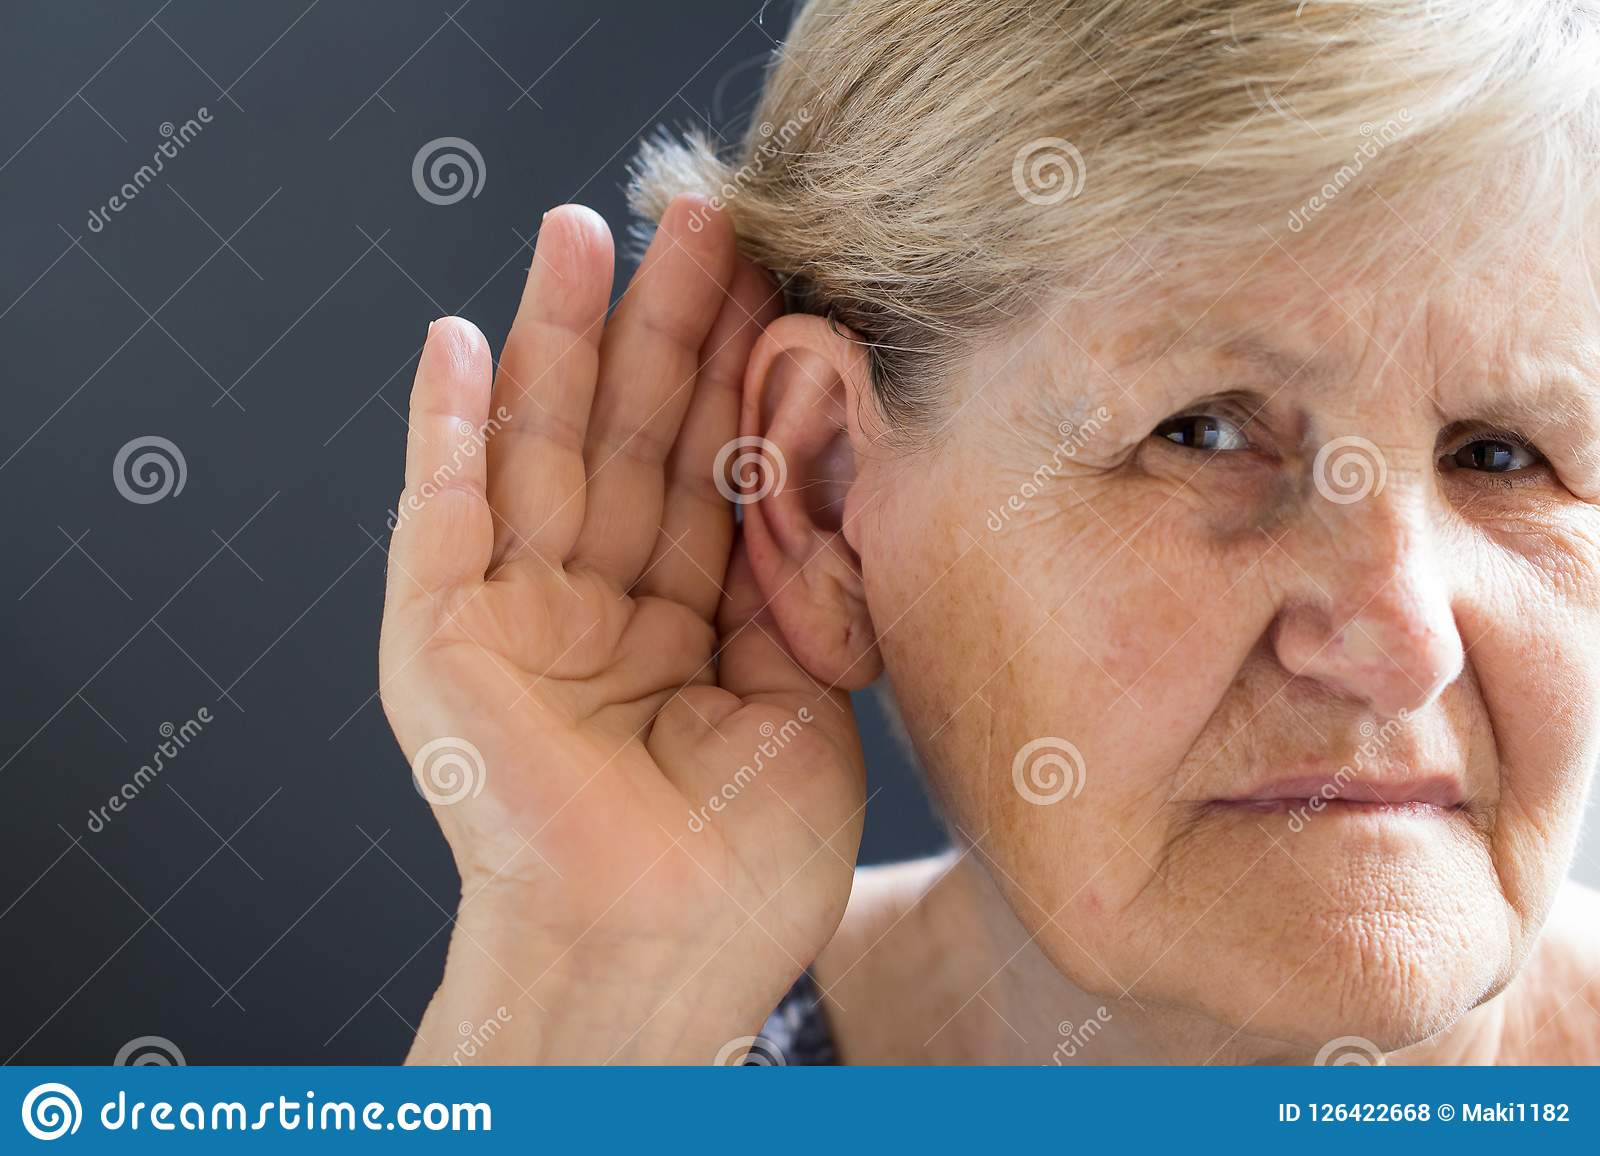 Elderly woman with hearing loss on grey background. Age related